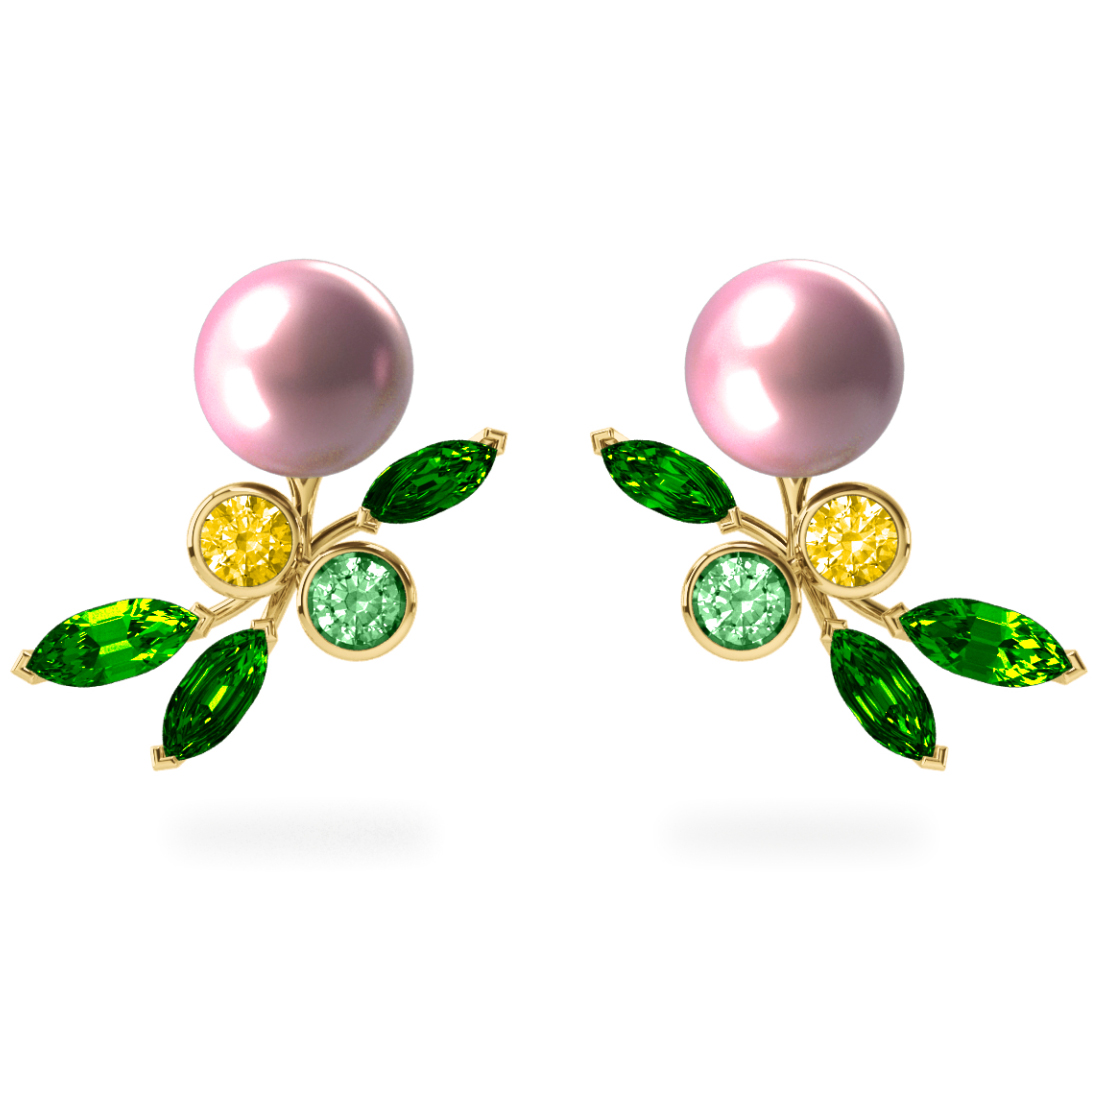 Boucles d'oreilles My Angel Rose - Saphirs, diamants, tsavorites & perles d'eau douce<br /> Or jaune 18 carats